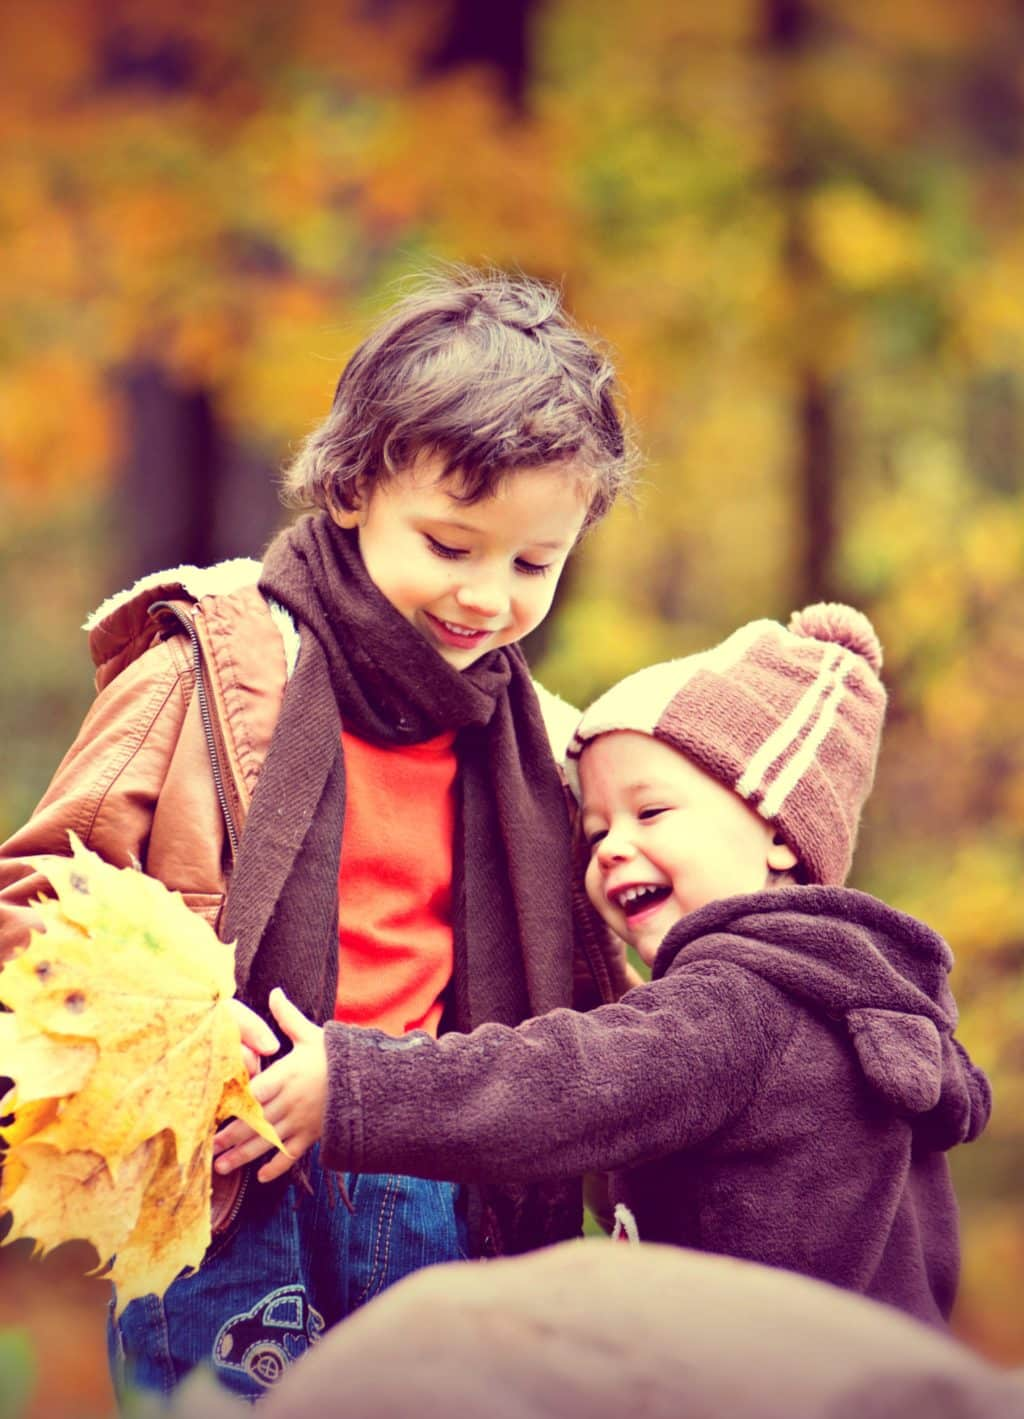 Two young boys playing outside on an autumn day with bright yellow and orange fall leaves and smiling.